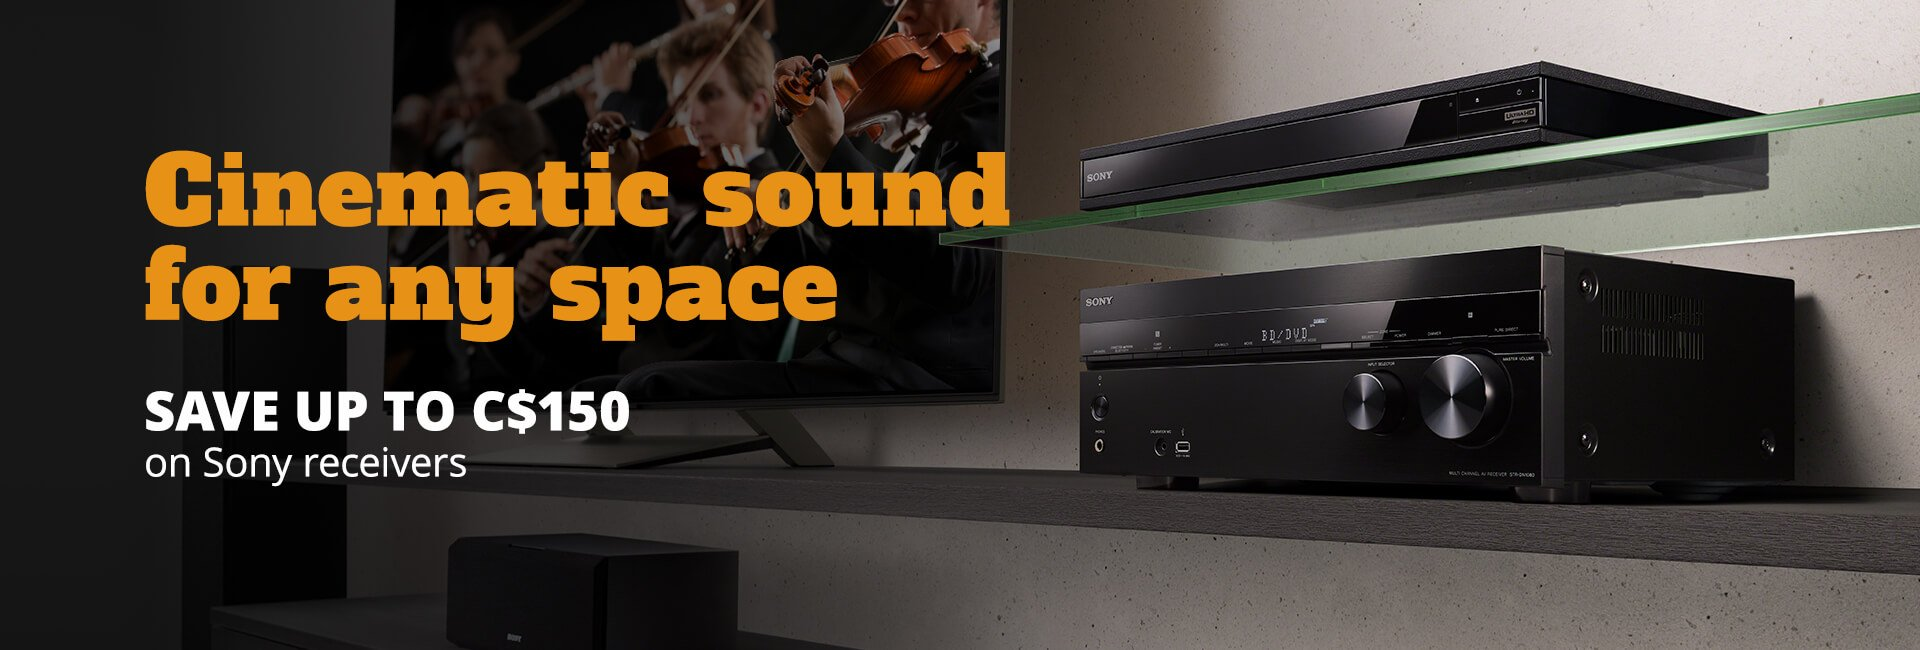 Save up to C$150 on Sony receivers